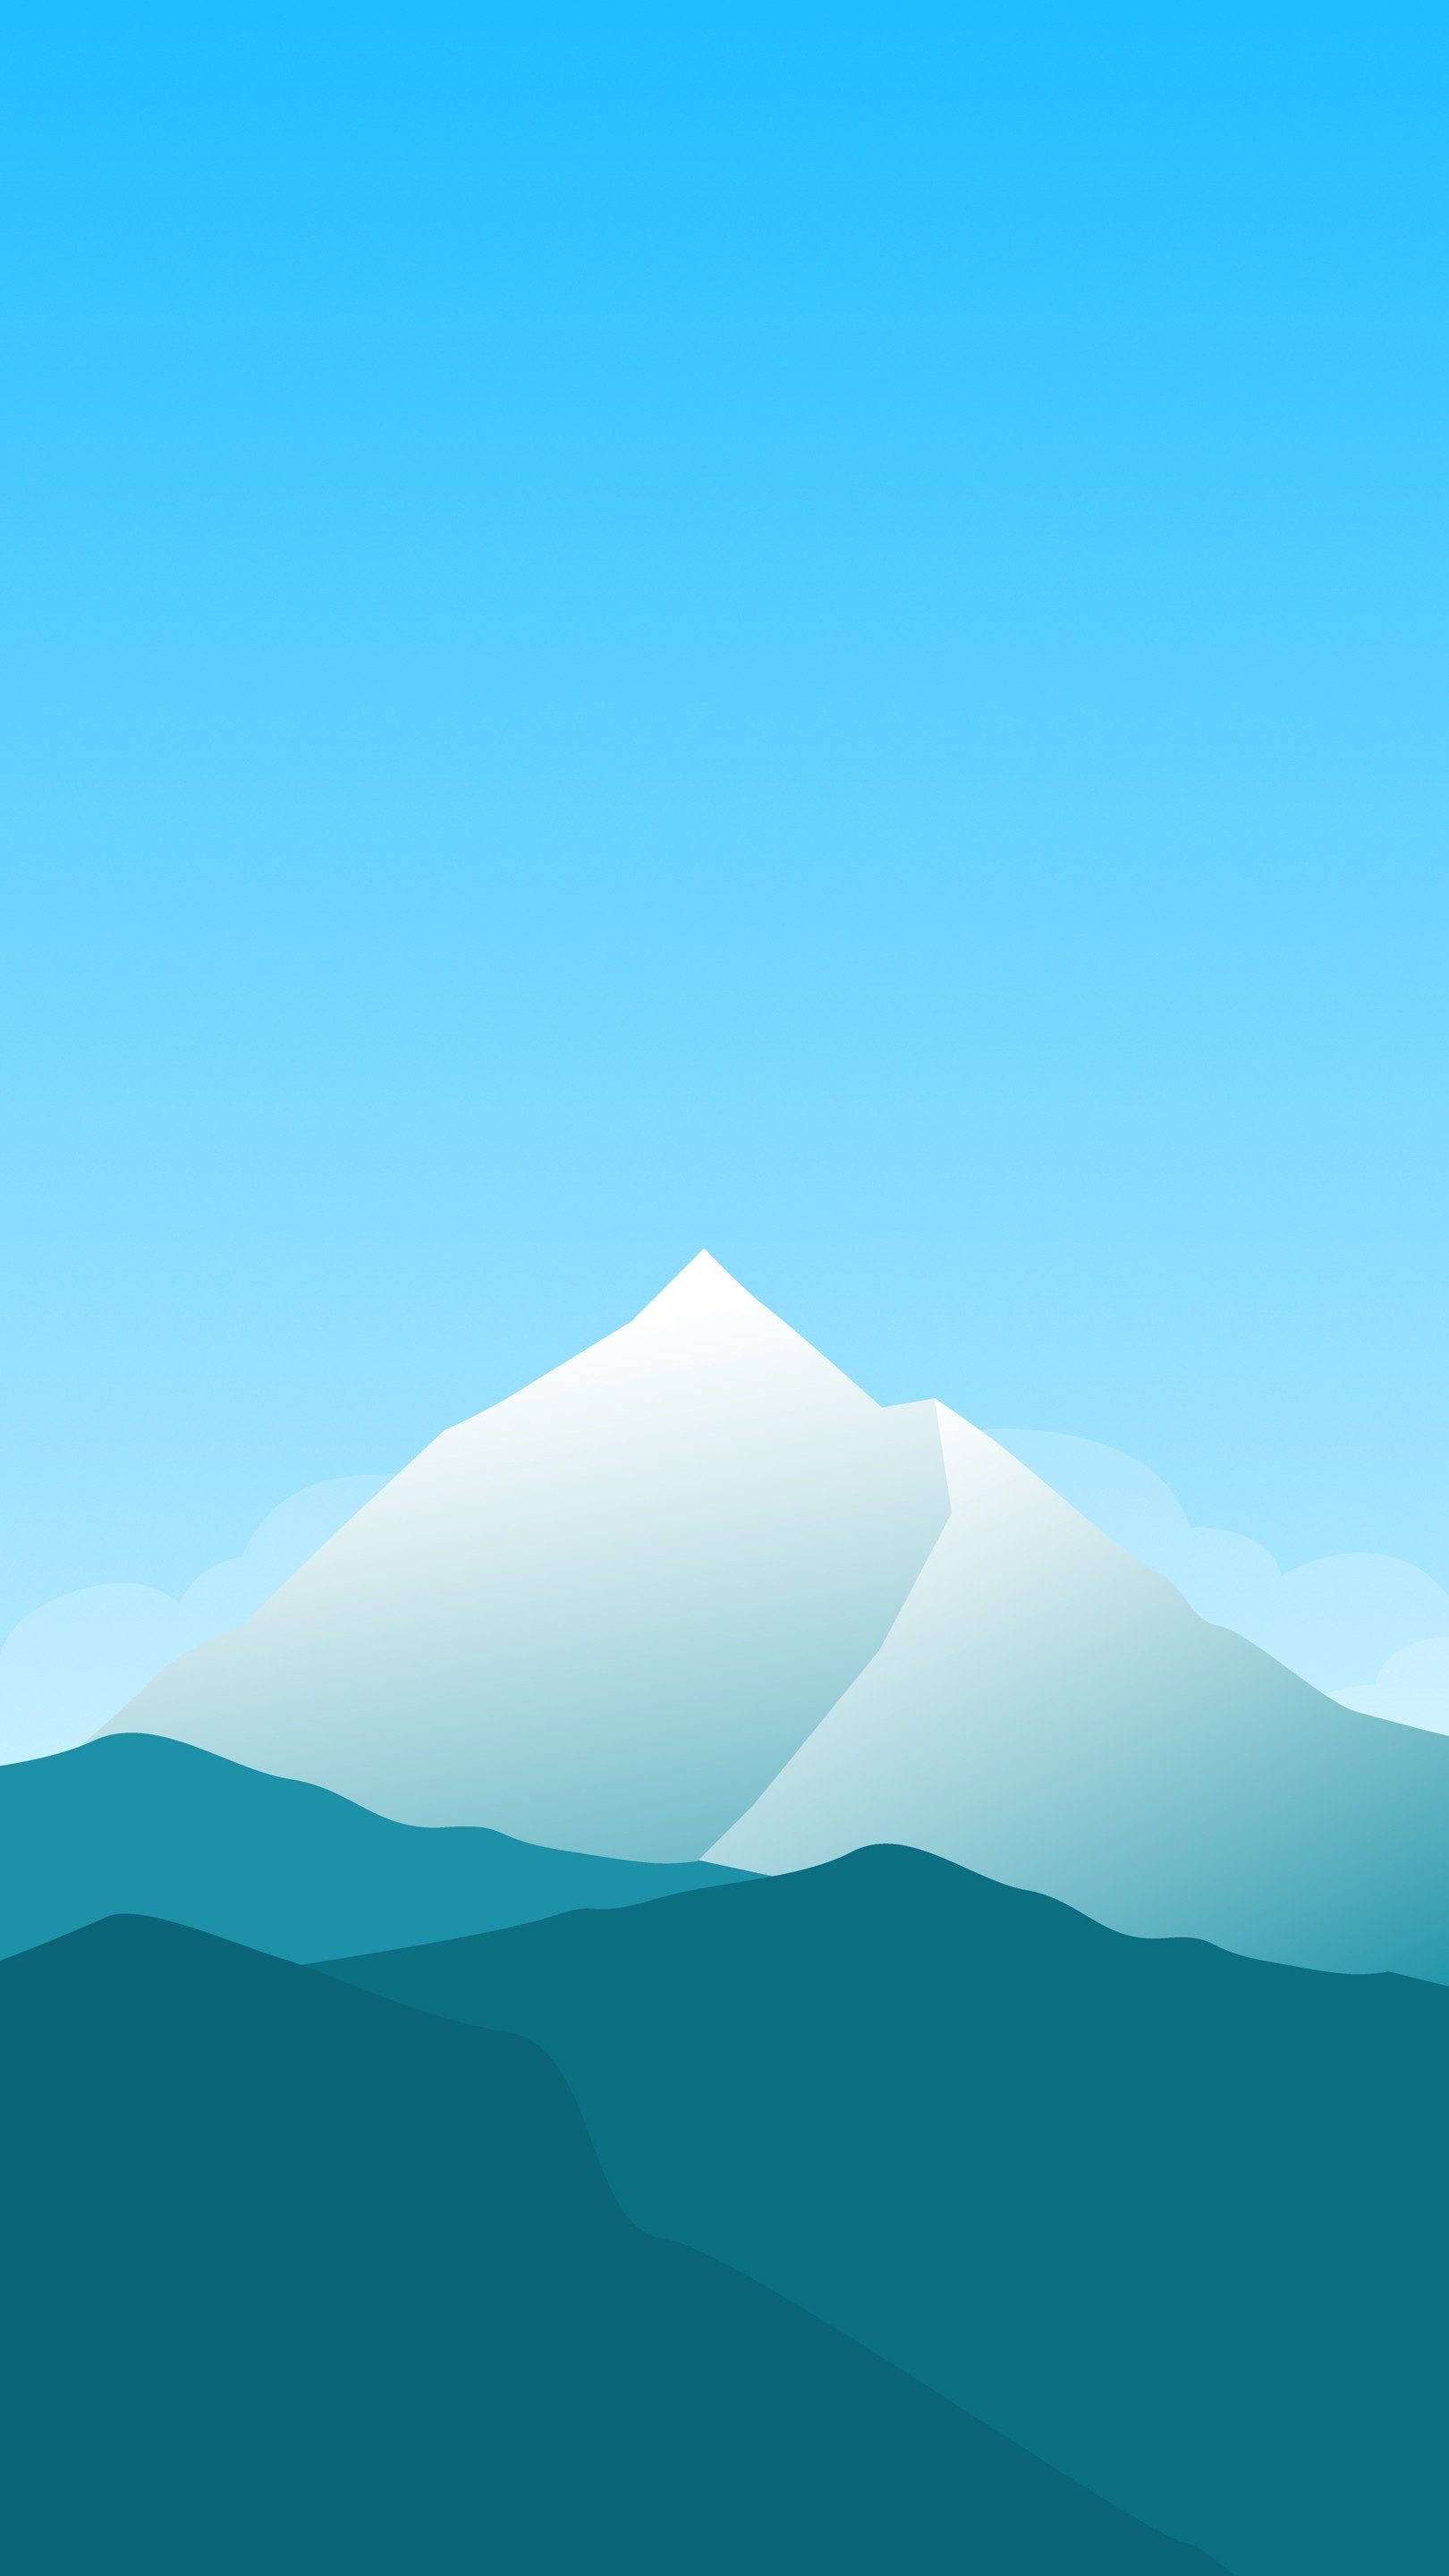 Download 34 Minimalist Wallpapers in QHD Quality | DroidViews